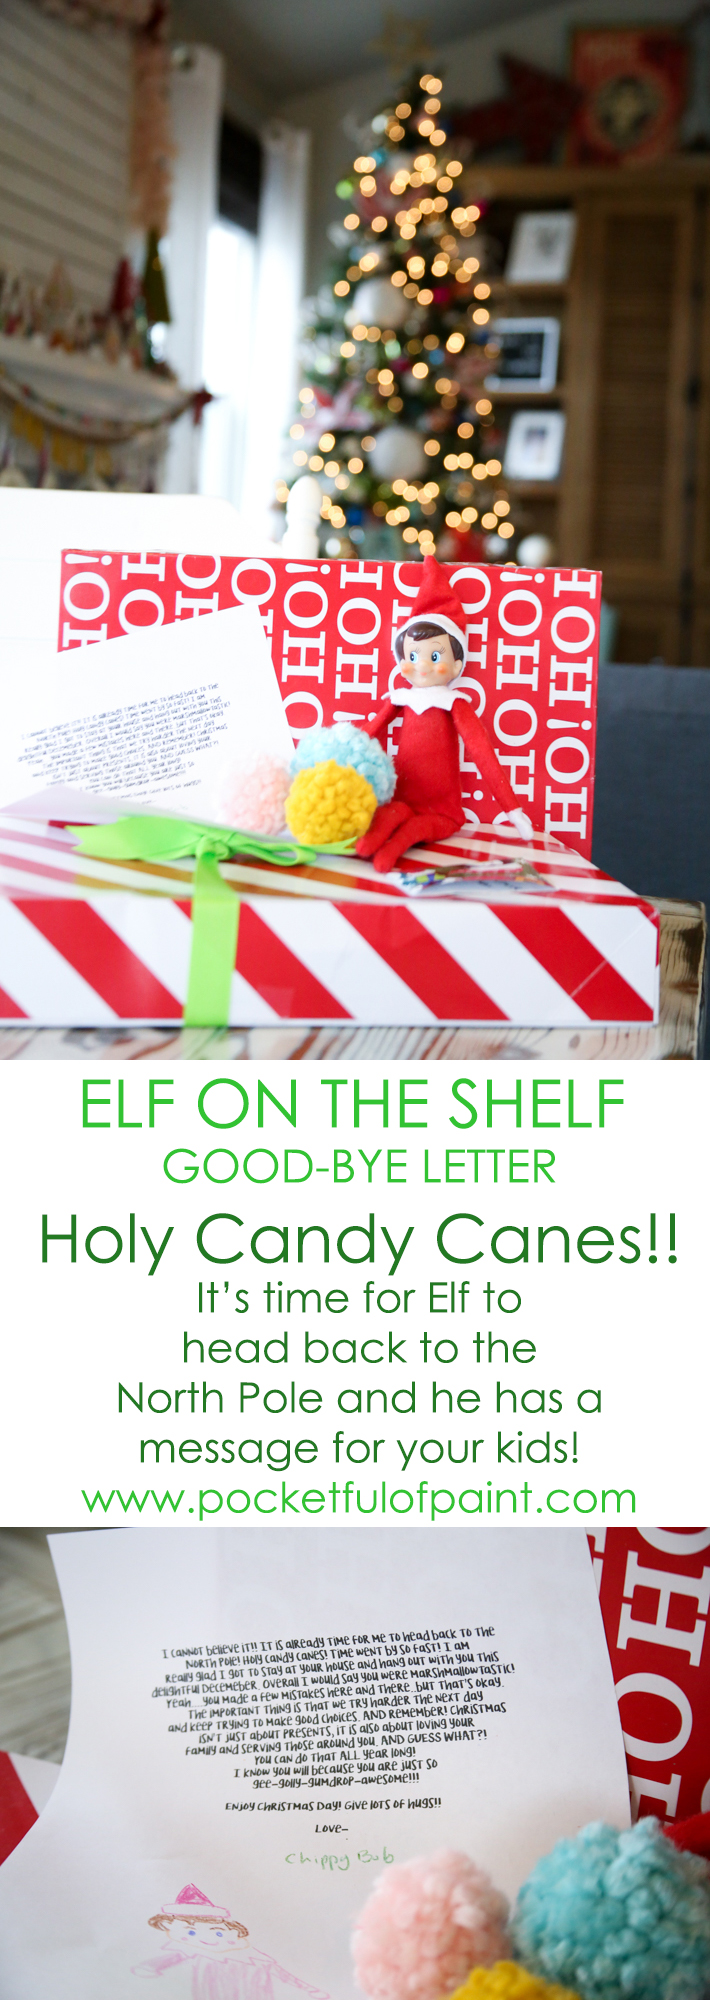 Goodbye Letter From Elf On The Shelf